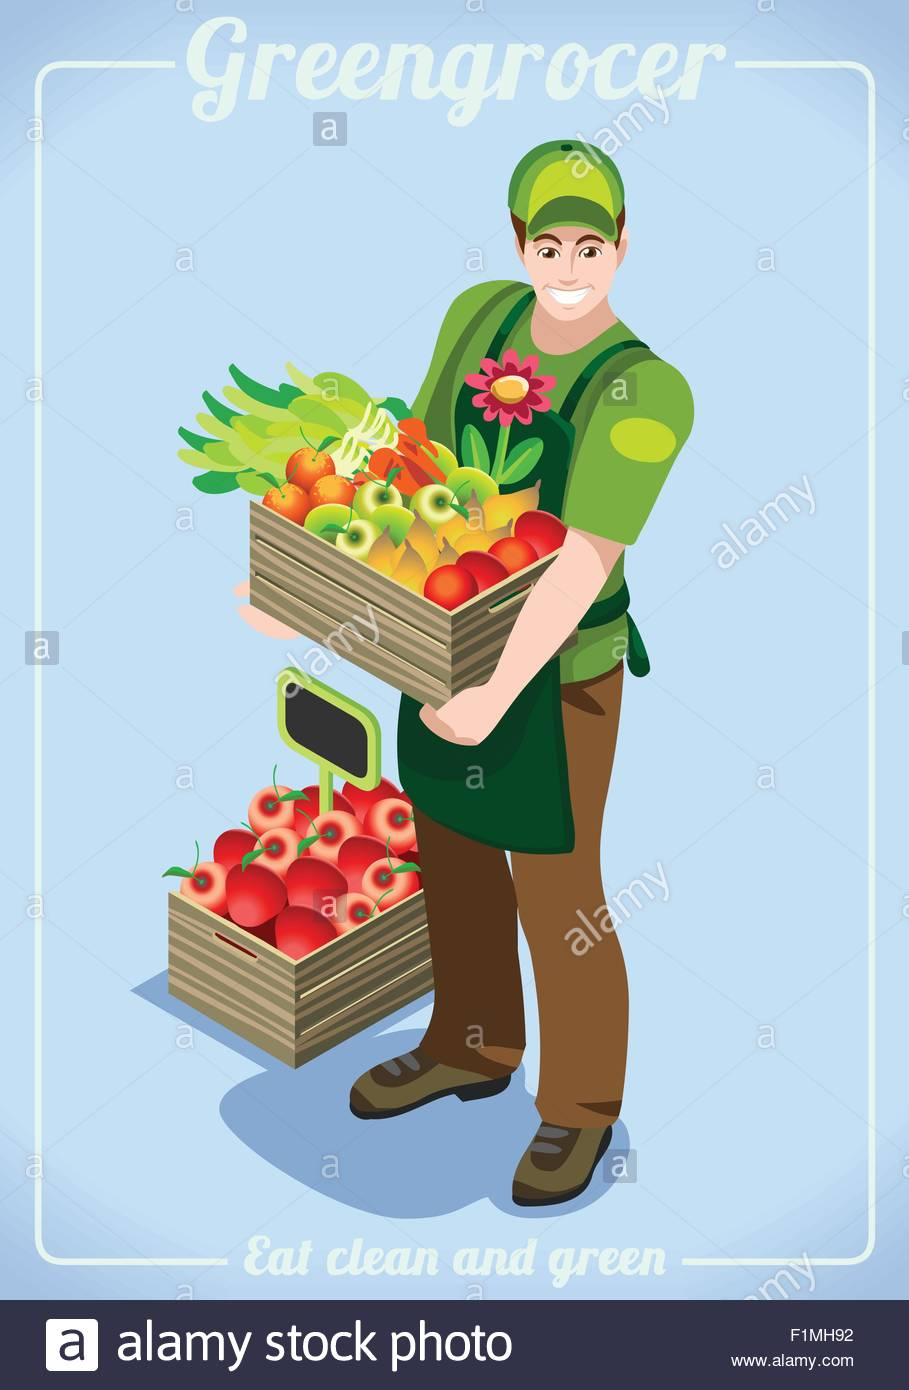 greengrocer fresh food agriculture logo company grocery careers greengrocer fresh food agriculture logo company grocery careers people unique isometric realistic poses new